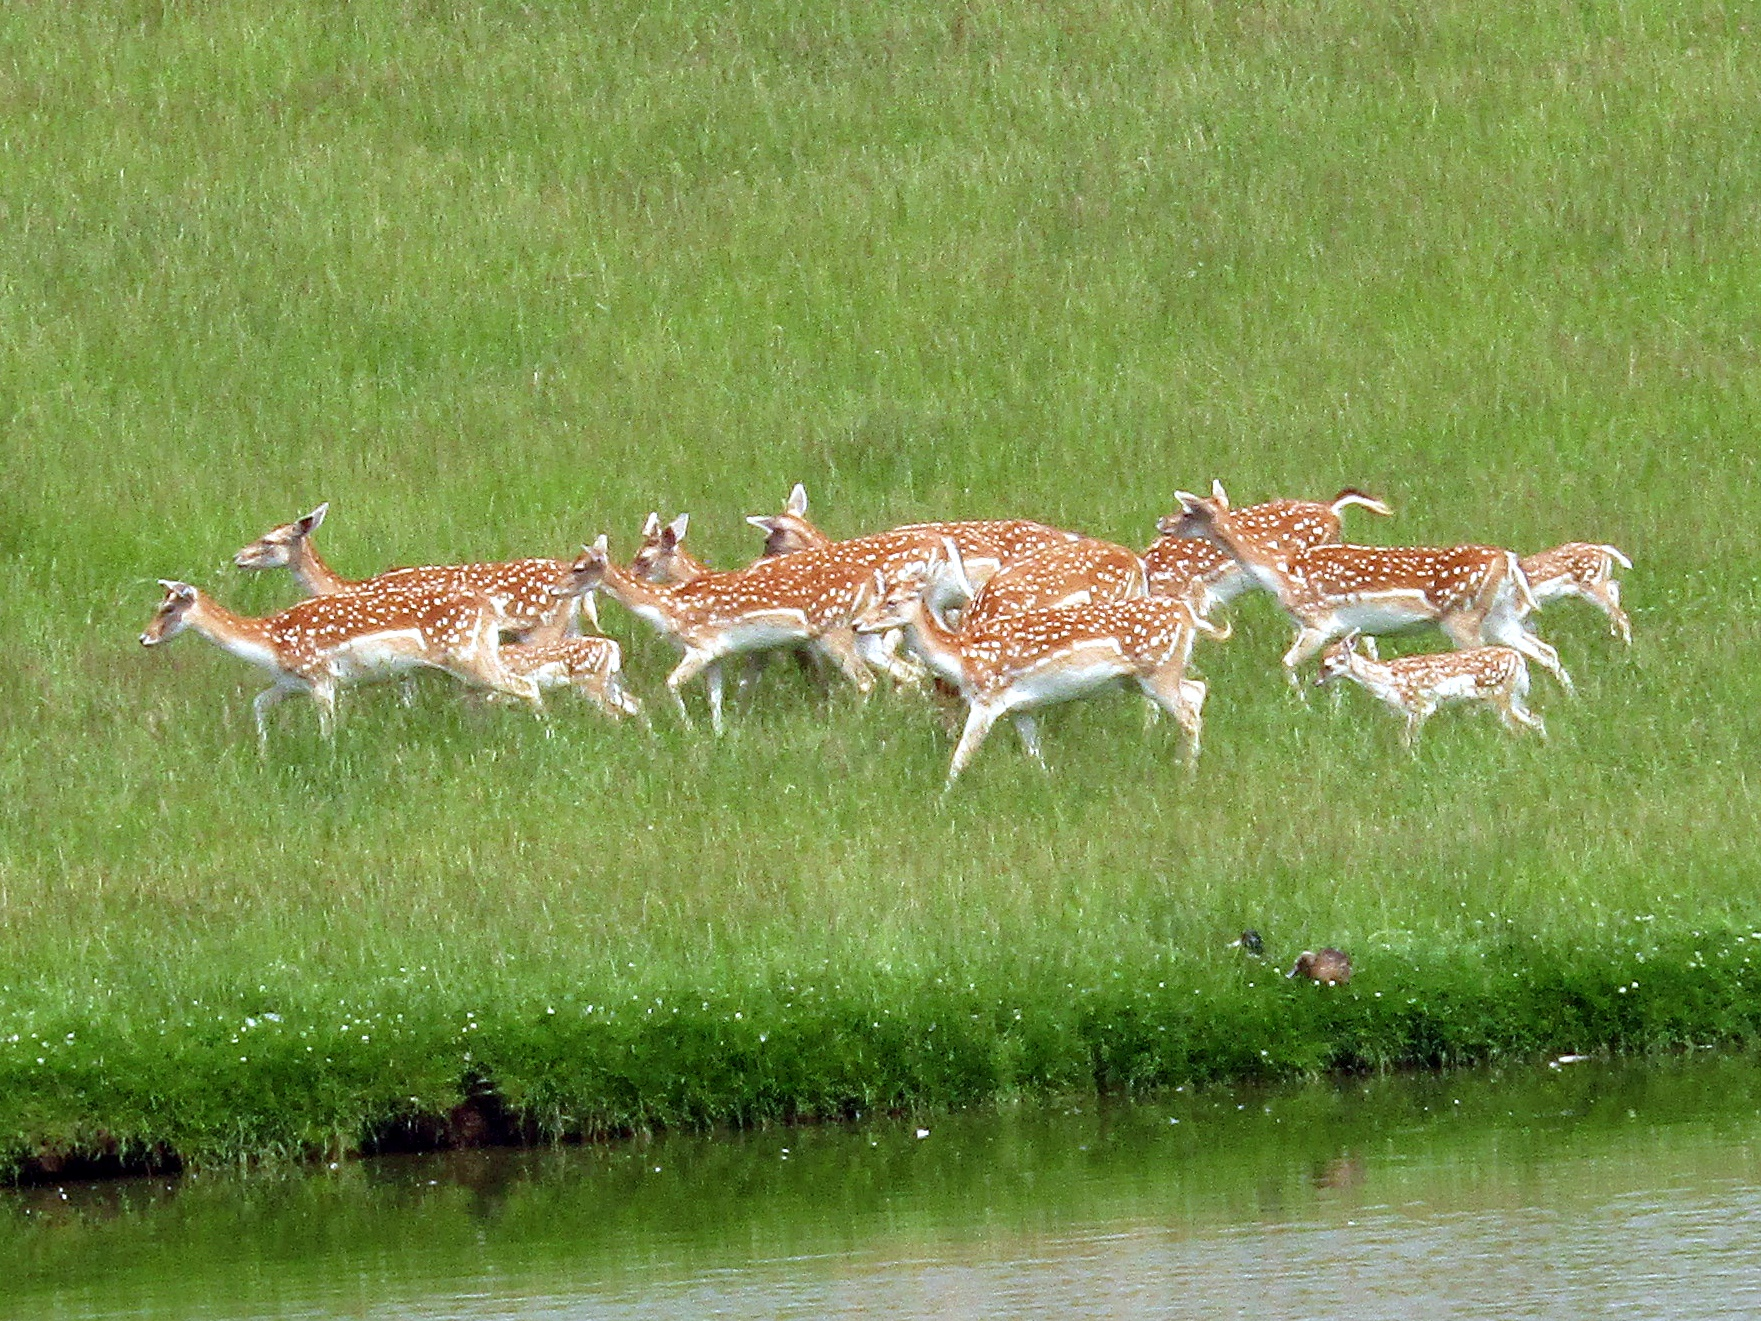 A photo of a herd deer at Whipsnade Zoo.